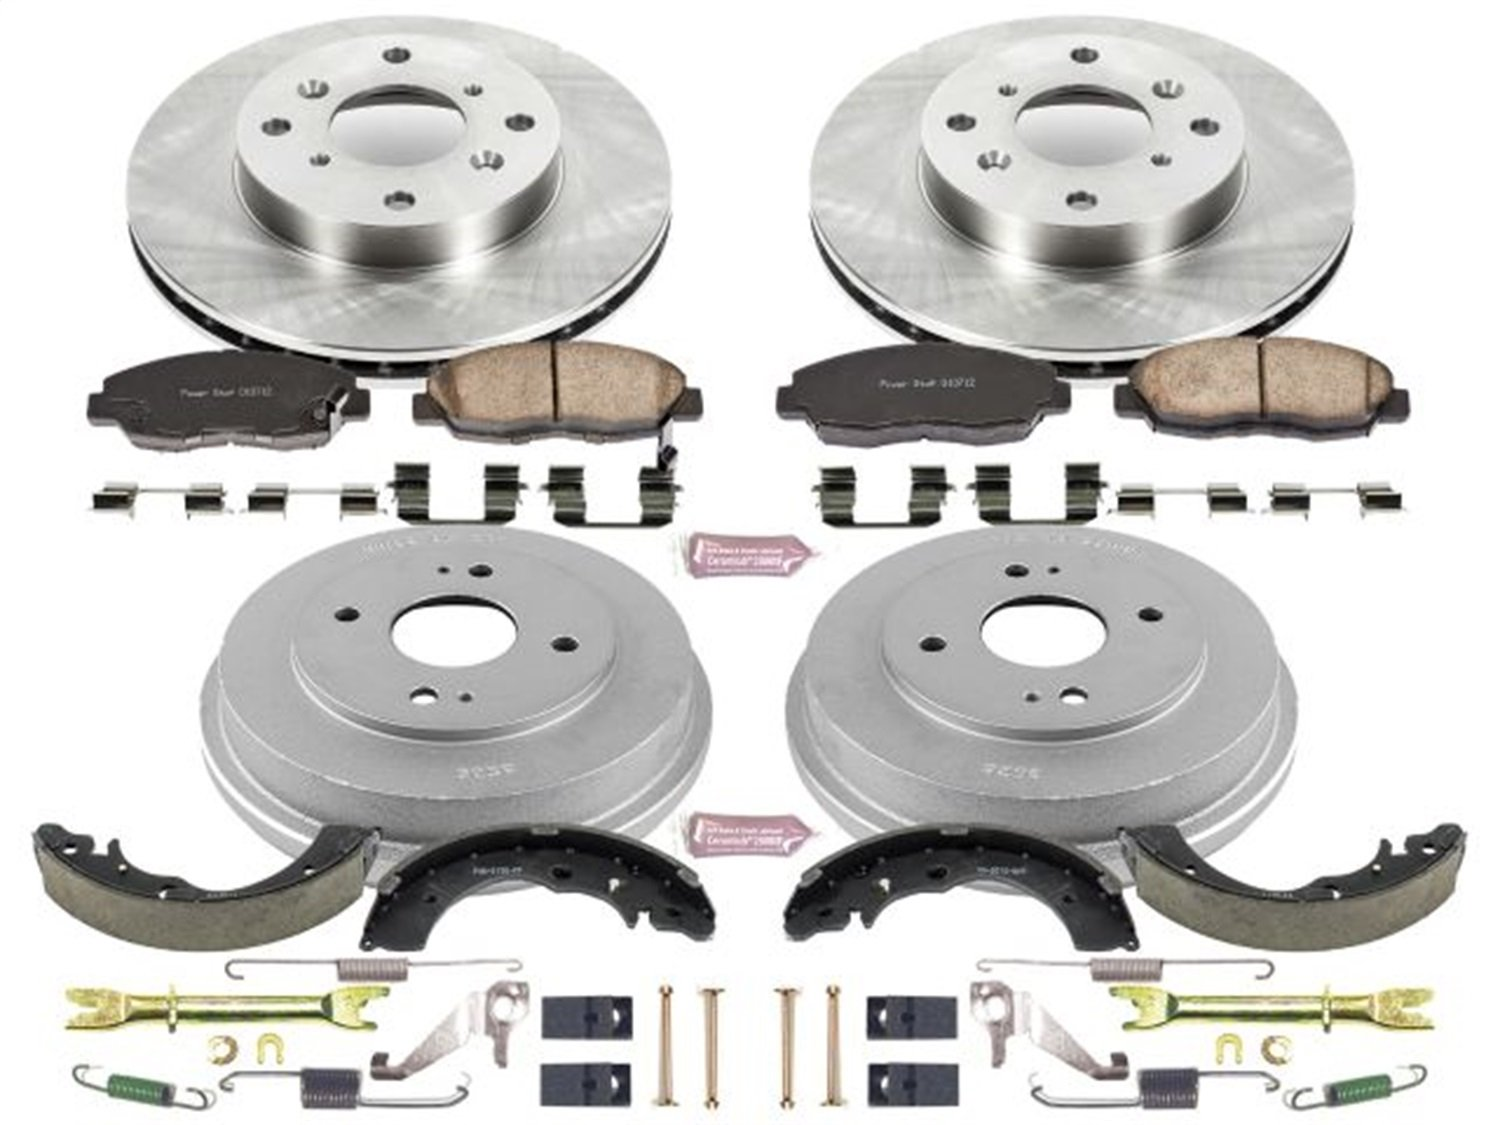 Power Stop Front /& Rear KOE15106DK Autospecialty Daily Driver Pad Drum and Shoe Kits Rotor